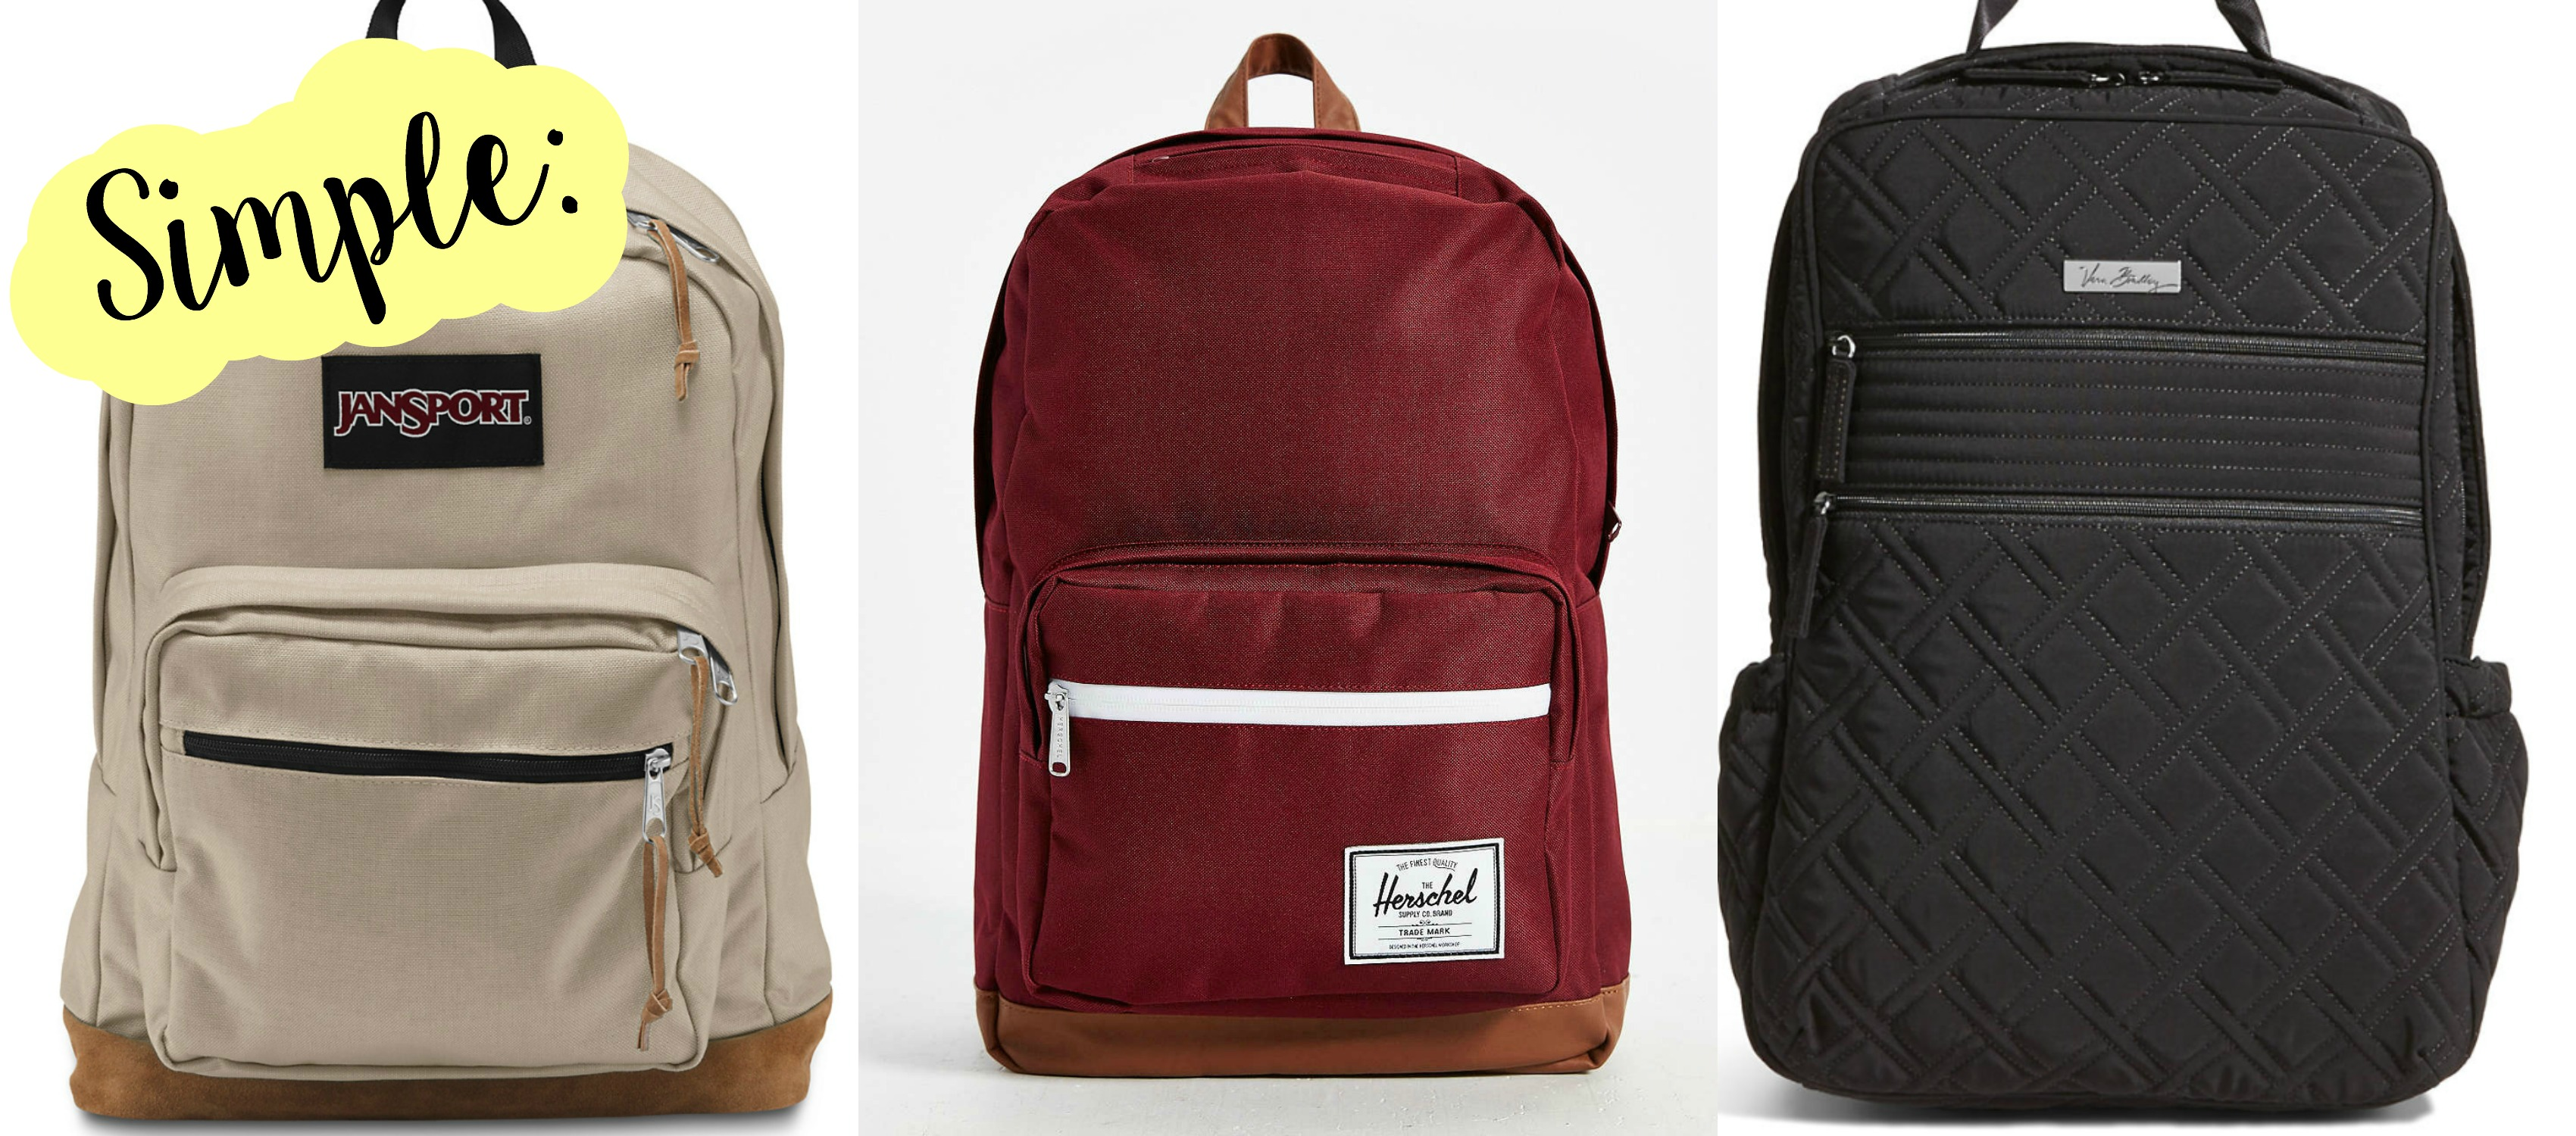 Are Jansport Backpacks Good sSIBMu7J